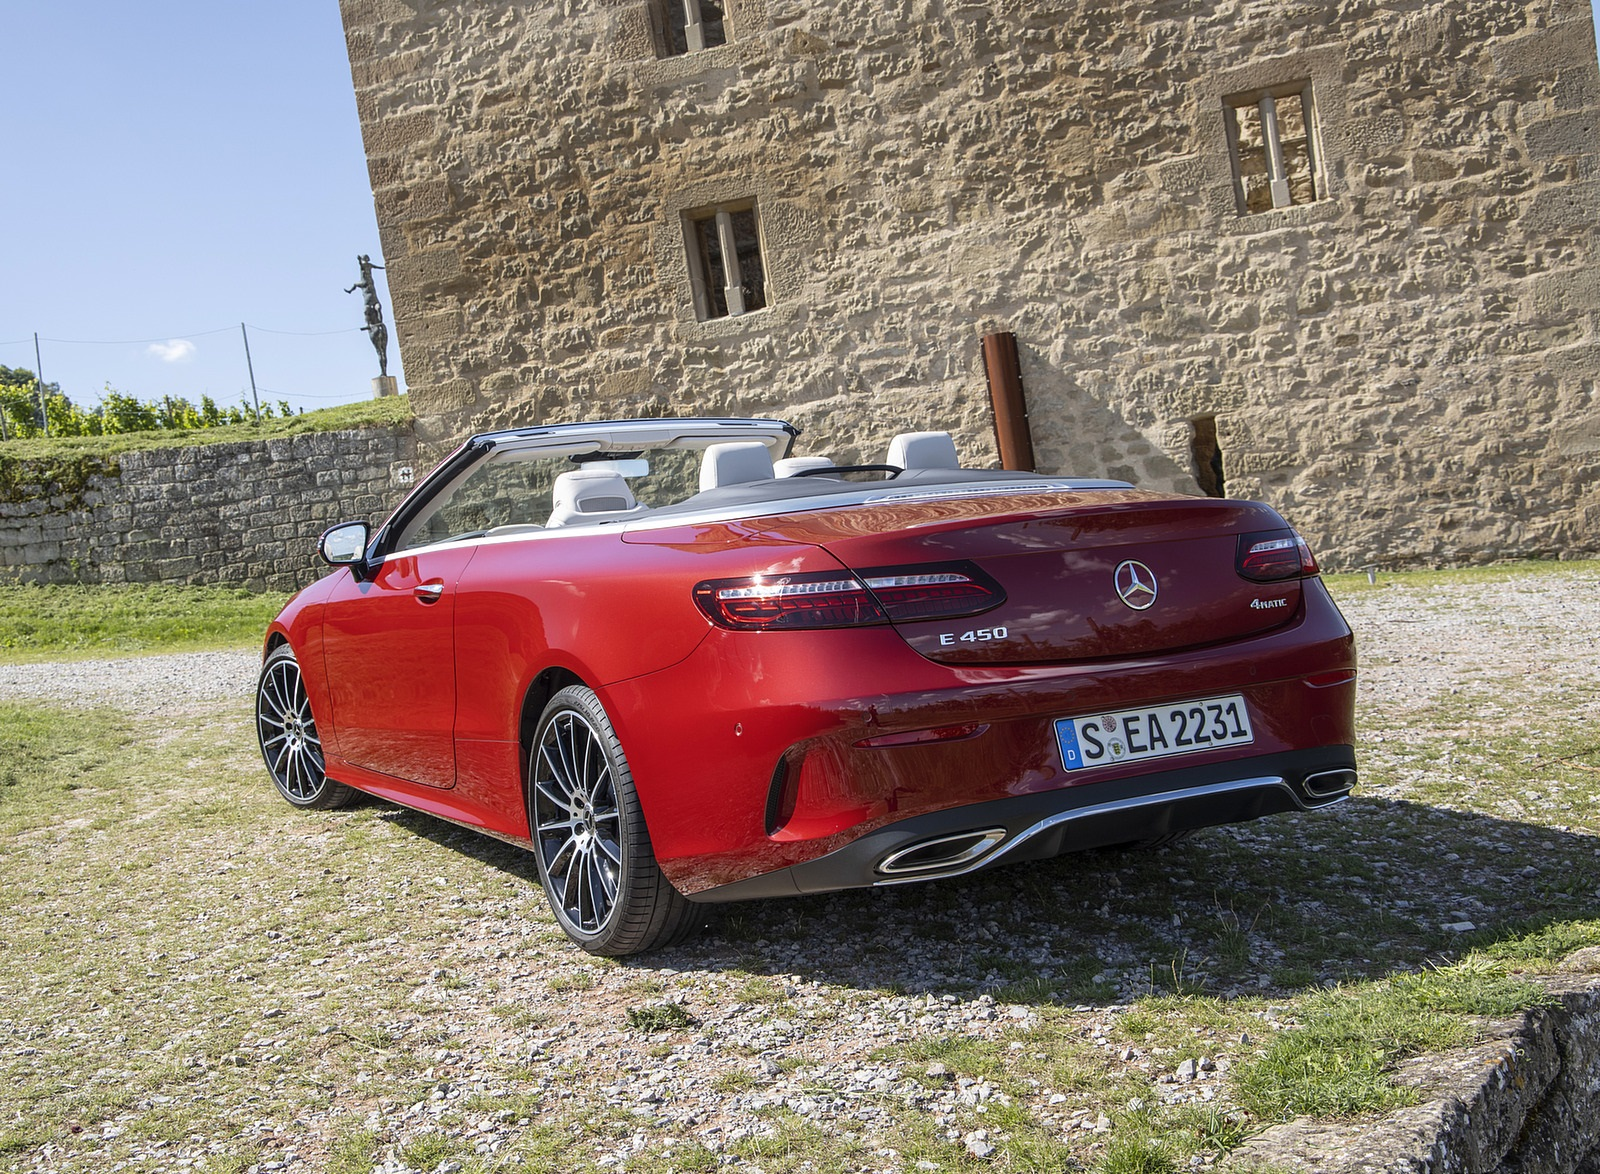 2021 Mercedes-Benz E 450 4MATIC Cabriolet (Color: Patagonia Red) Rear Three-Quarter Wallpapers (10)